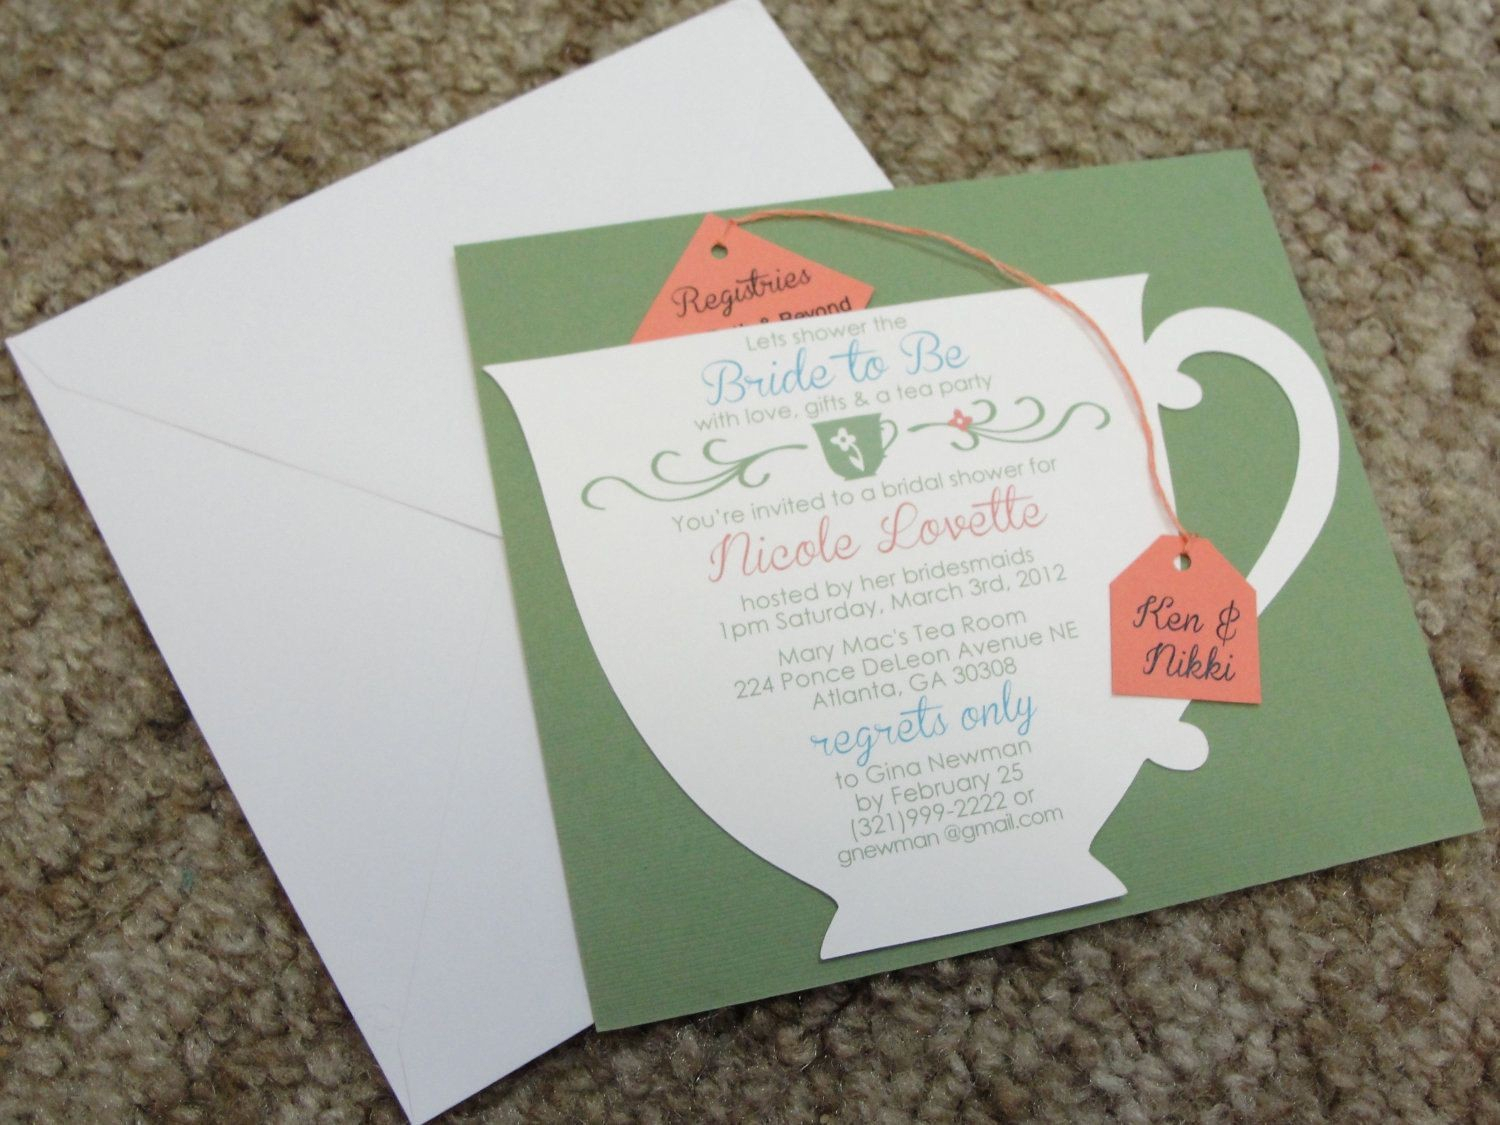 10 Most Recommended Diy Bridal Shower Invitations Ideas 11 stunning diy bridal shower invitations for your wedding 2020